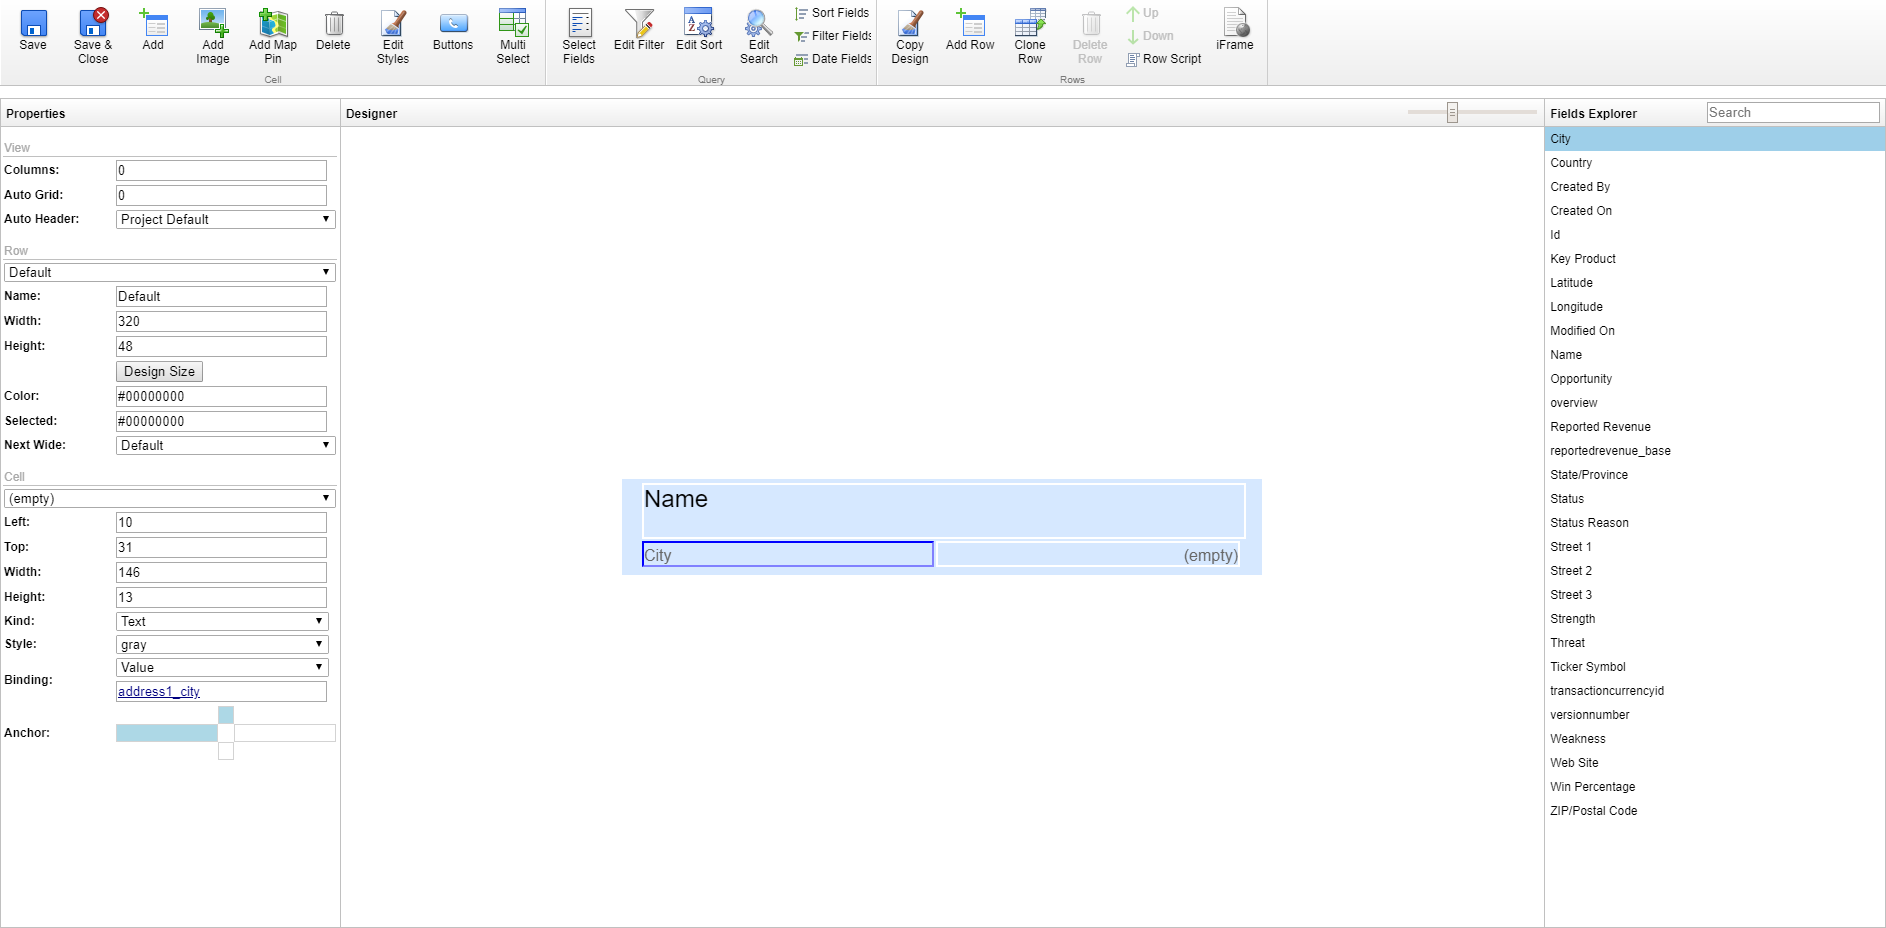 Creating a Public View 4.4.1_4